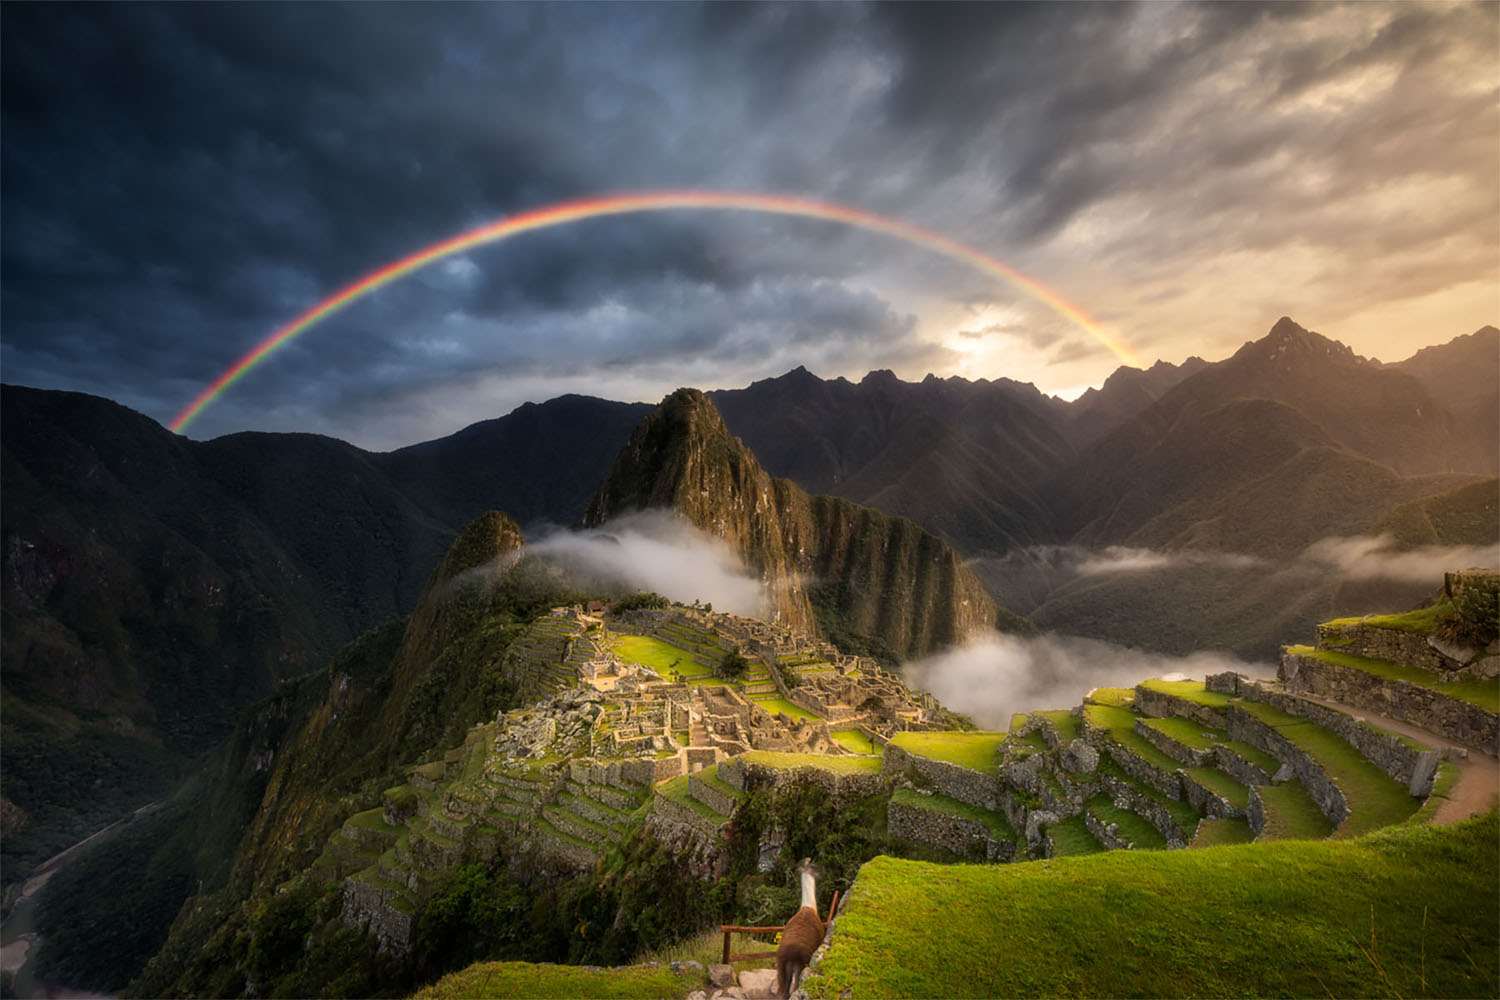 A rainbow arches across the sky over the archeological site of Machu Picchu